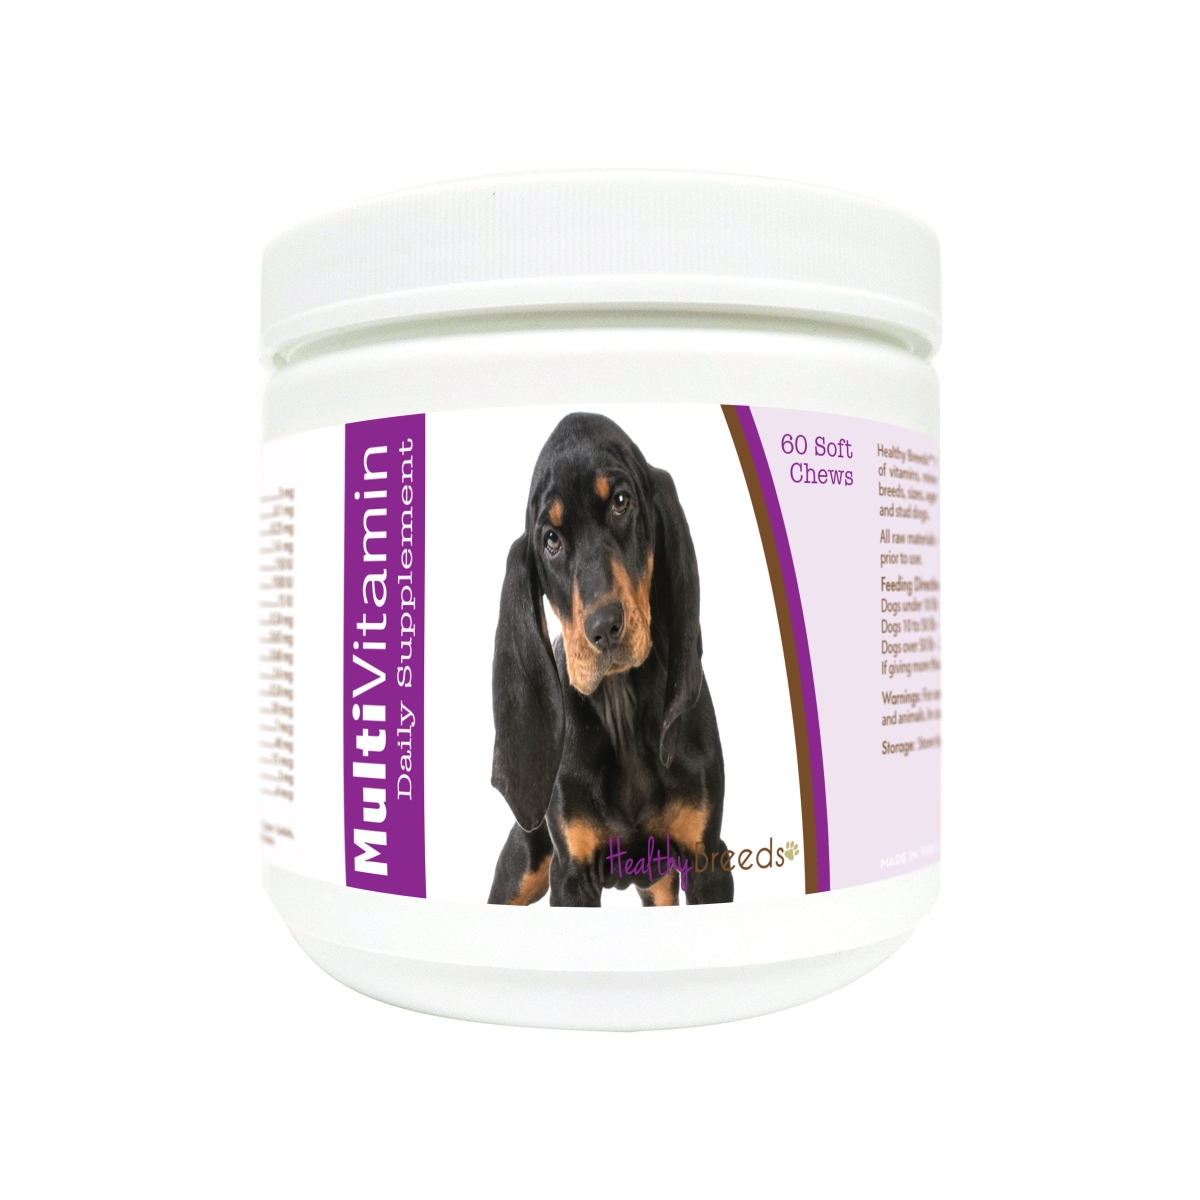 Healthy Breeds 840235174110 Black & Tan Coonhound Multi-Vitamin Soft Chews - 60 Count